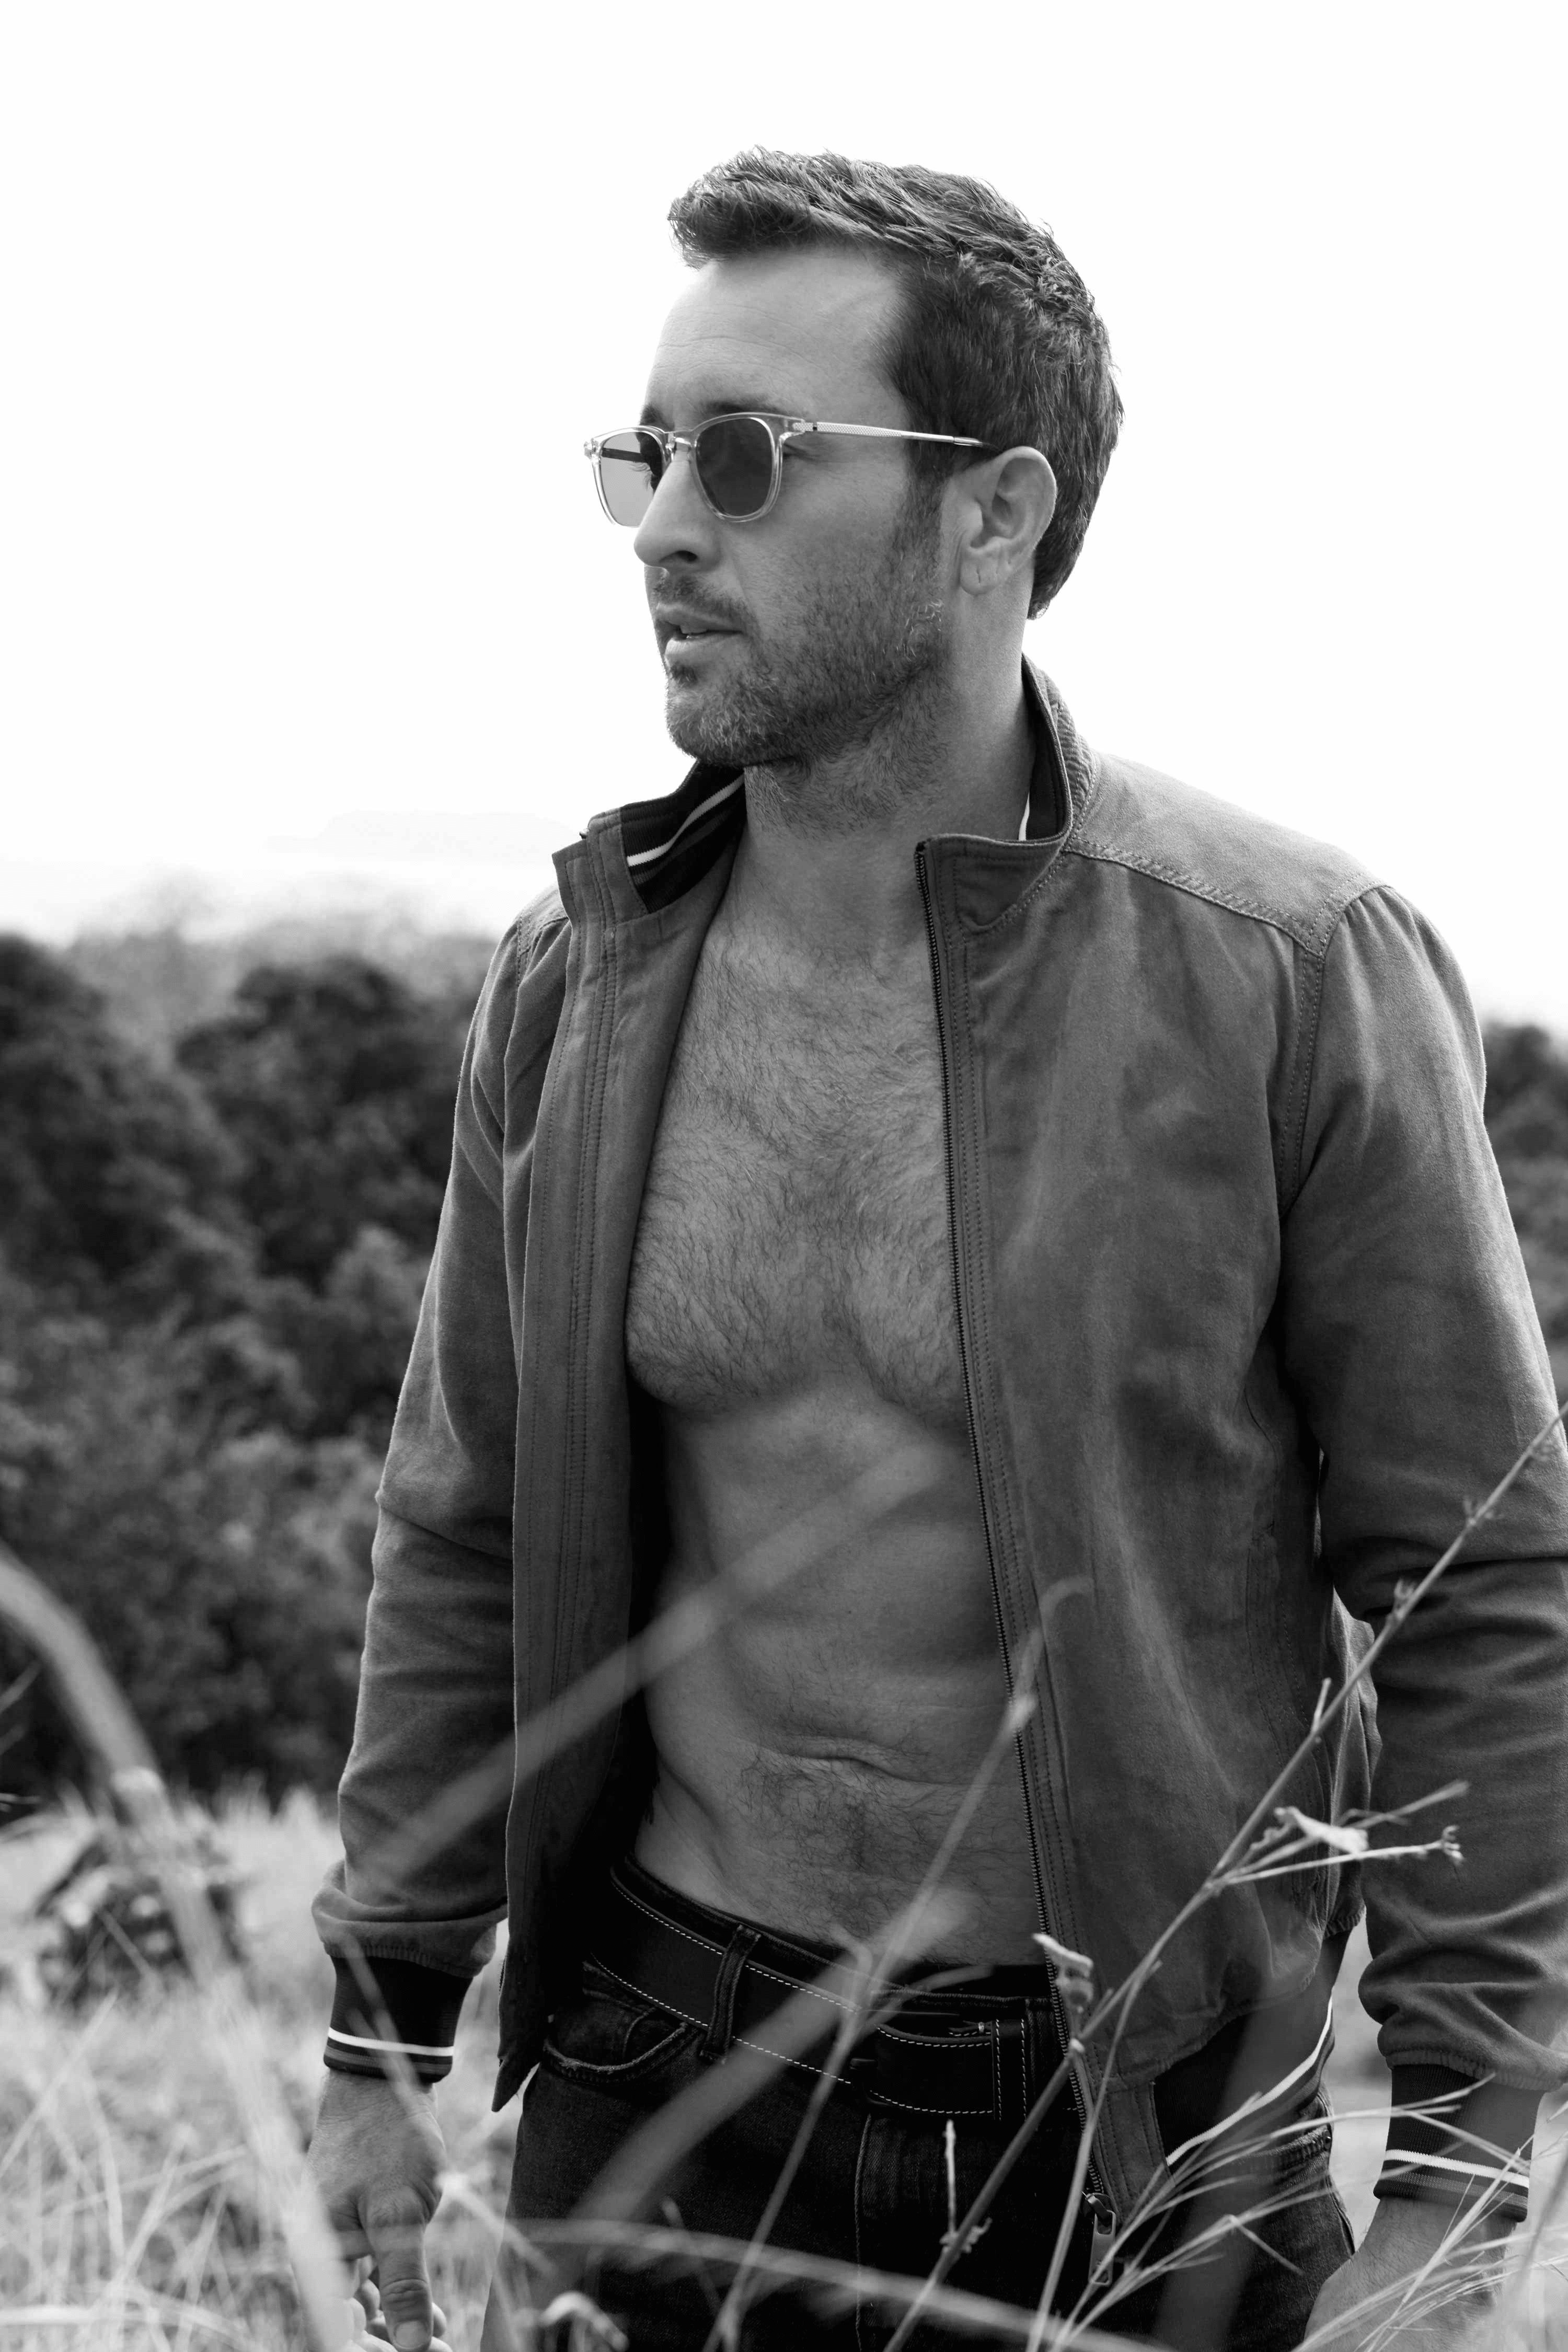 Black and white photo of Alex O'Loughlin shirtless